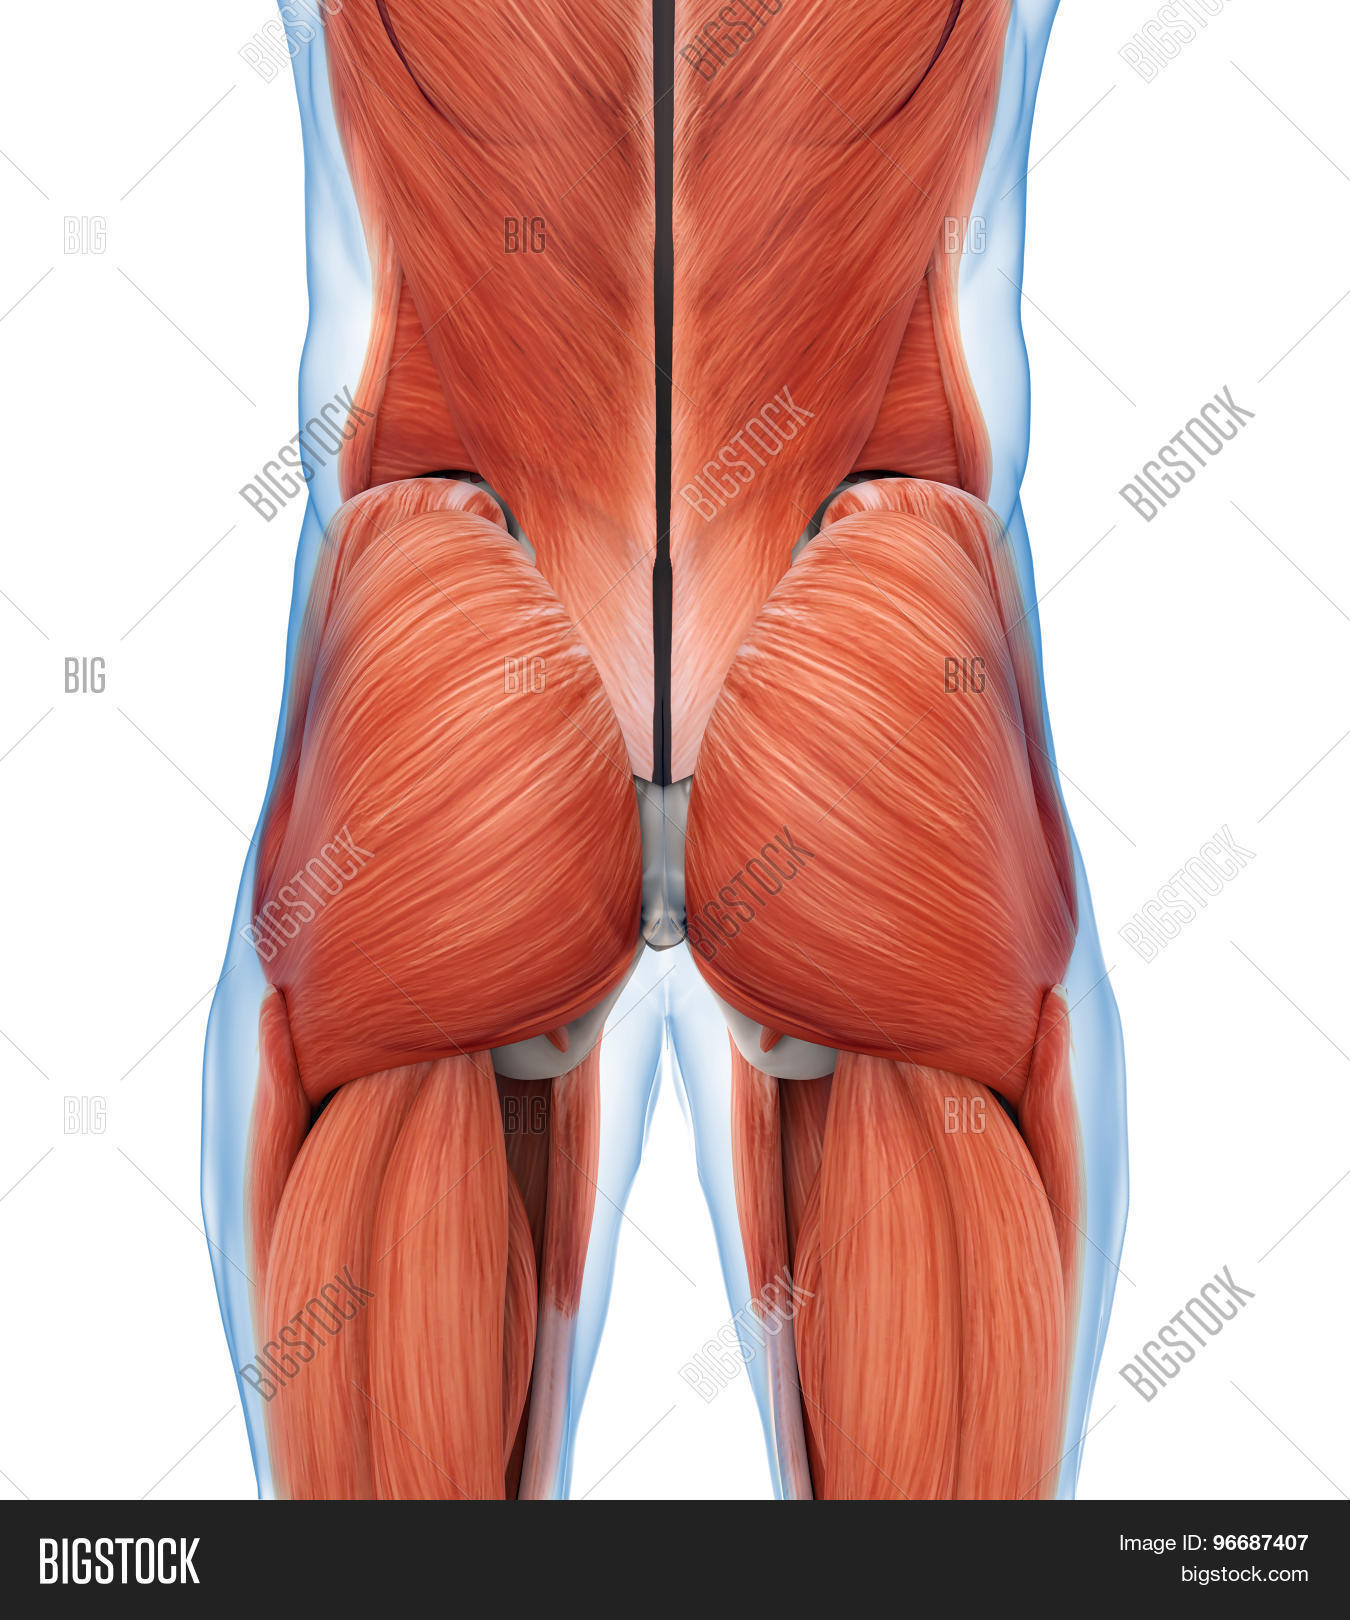 Buttock Muscles Anatomy Illustration . 3D render